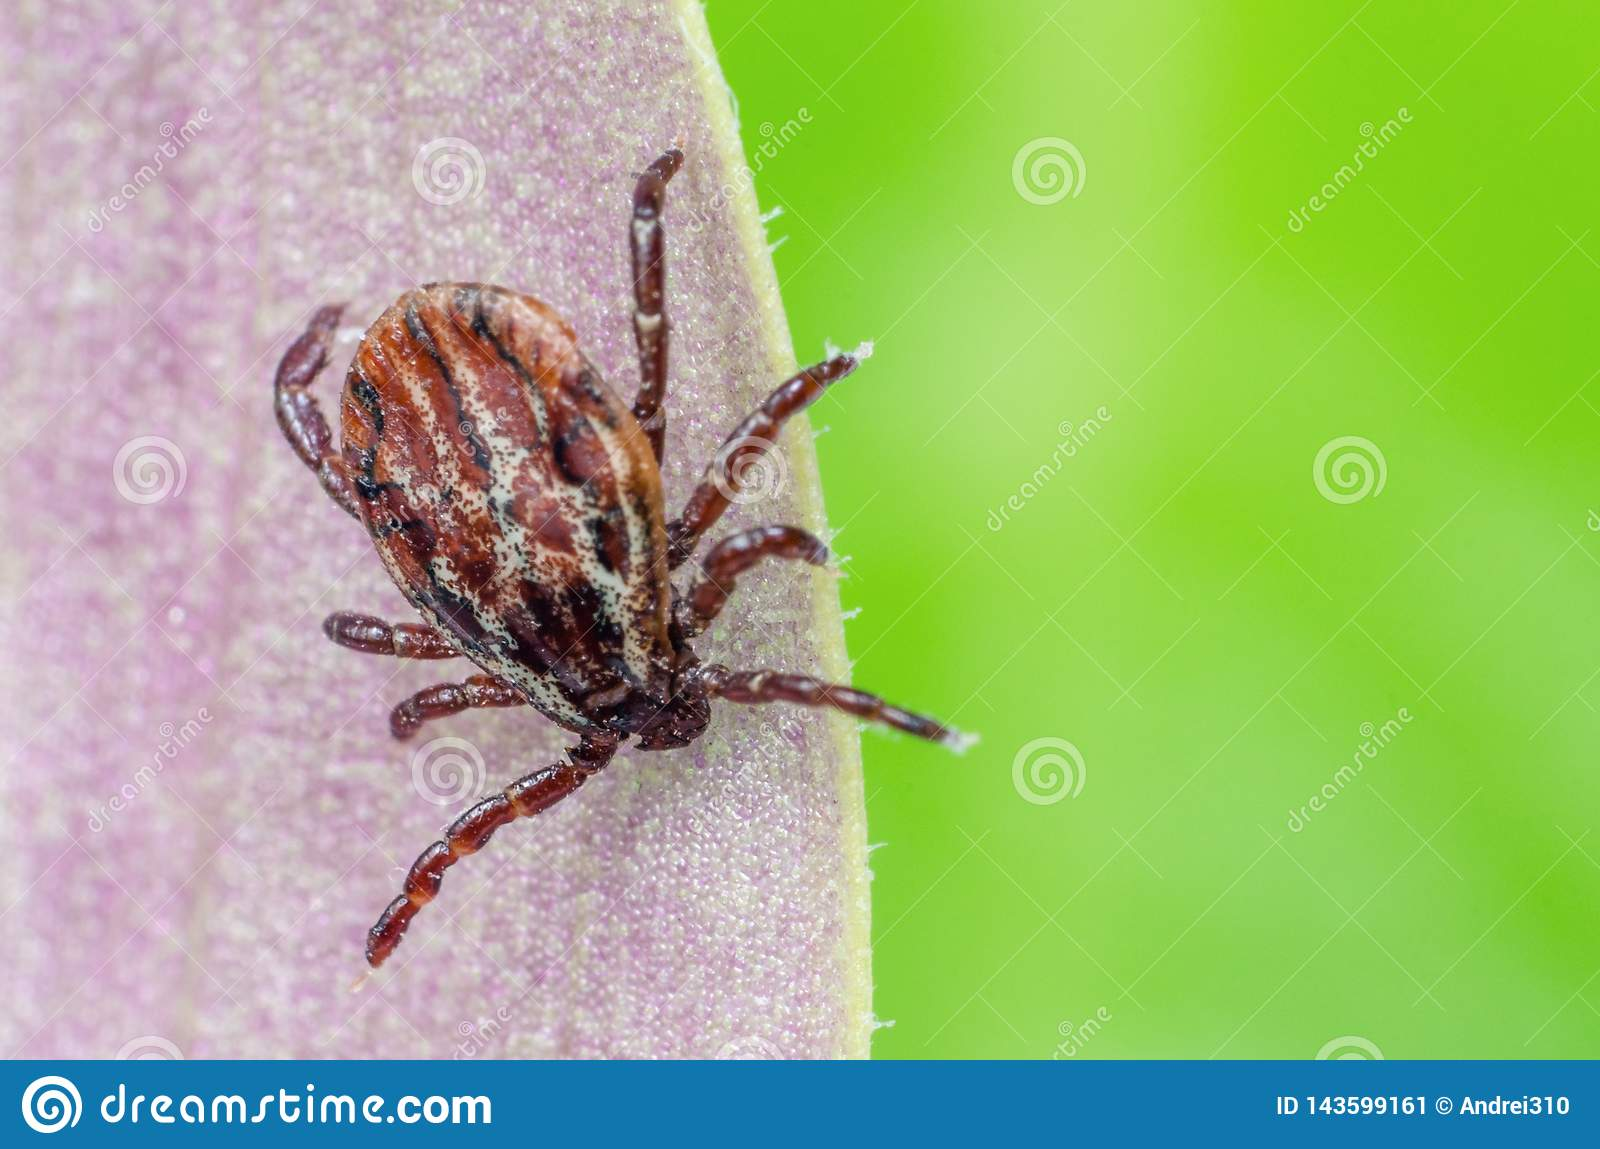 A dangerous parasite and infection carrier mite sitting on a leaf